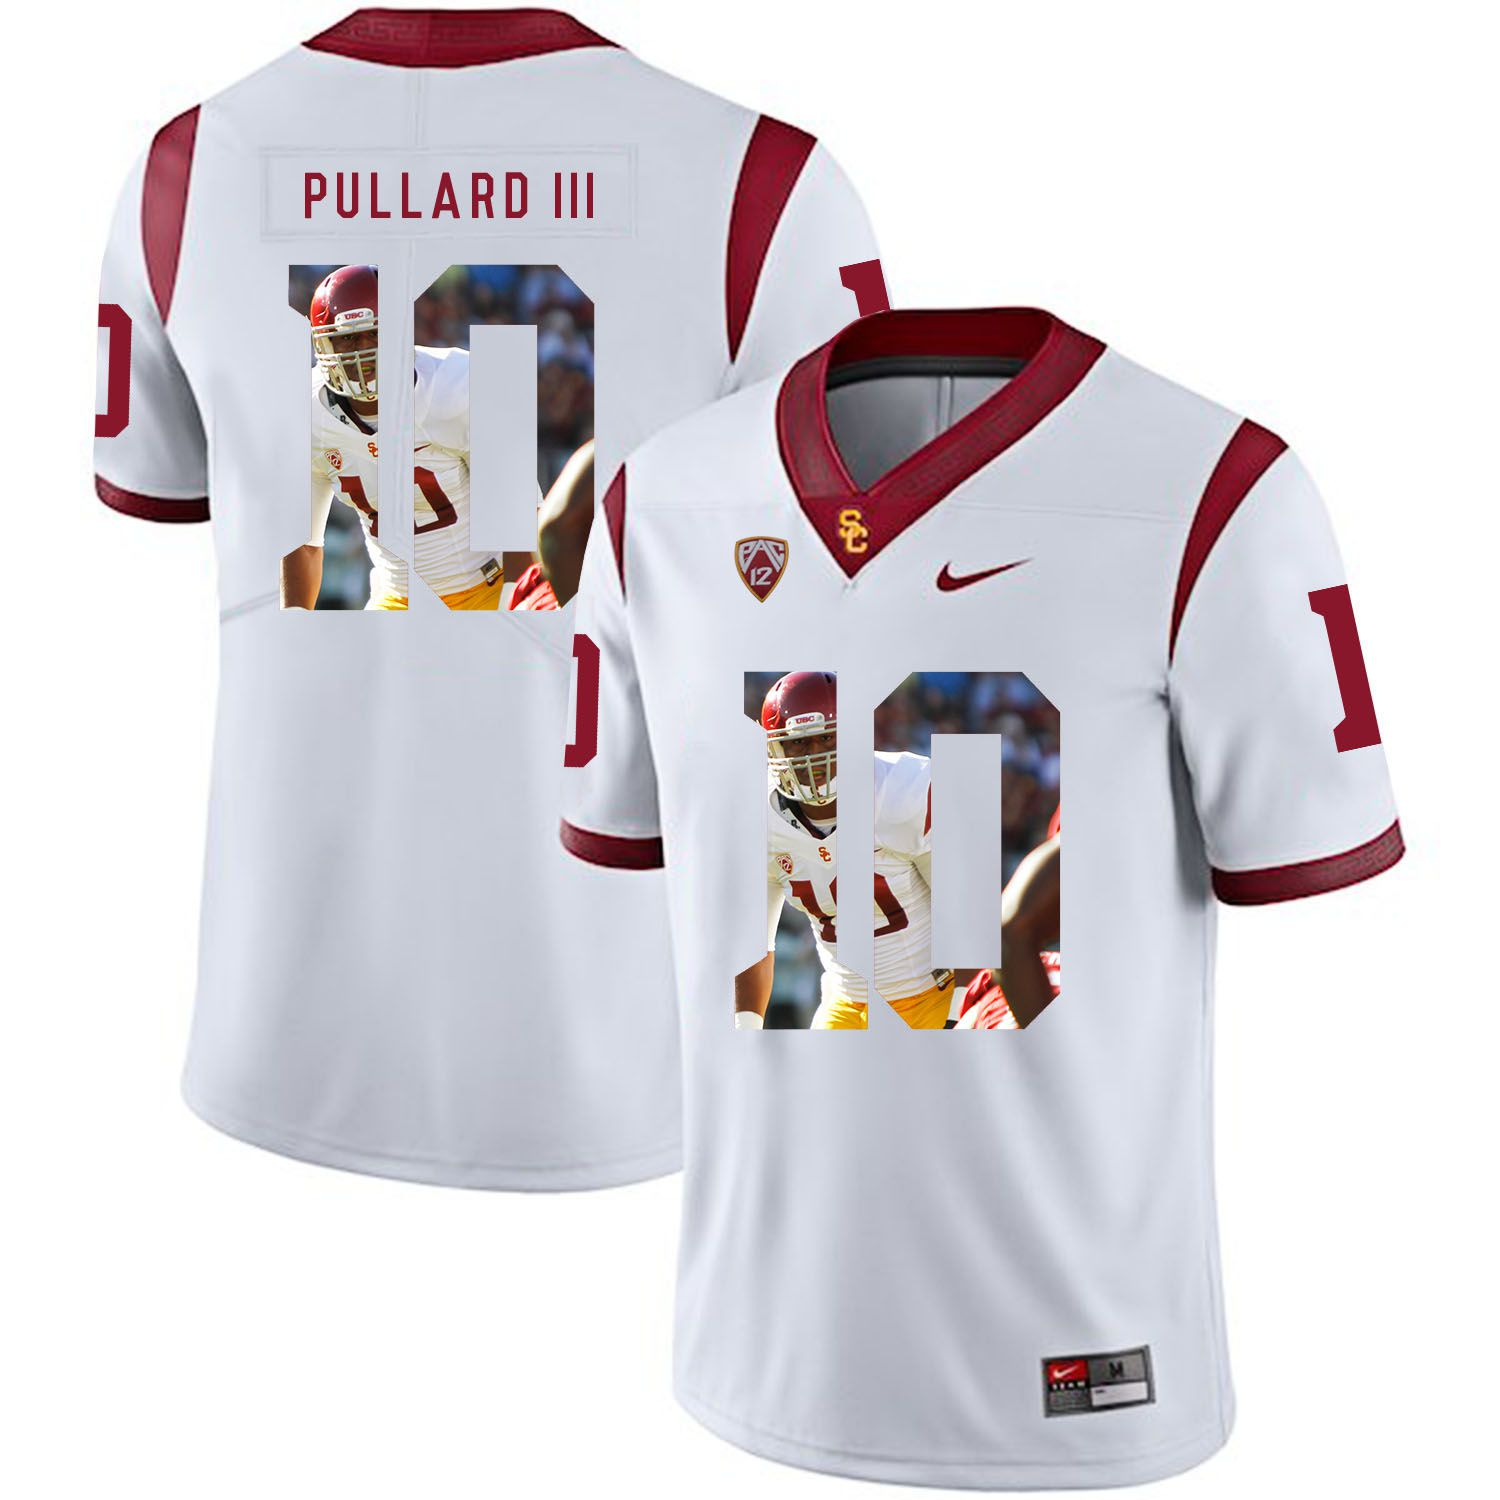 Men USC Trojans 10 Pullard iii White Fashion Edition Customized NCAA Jerseys